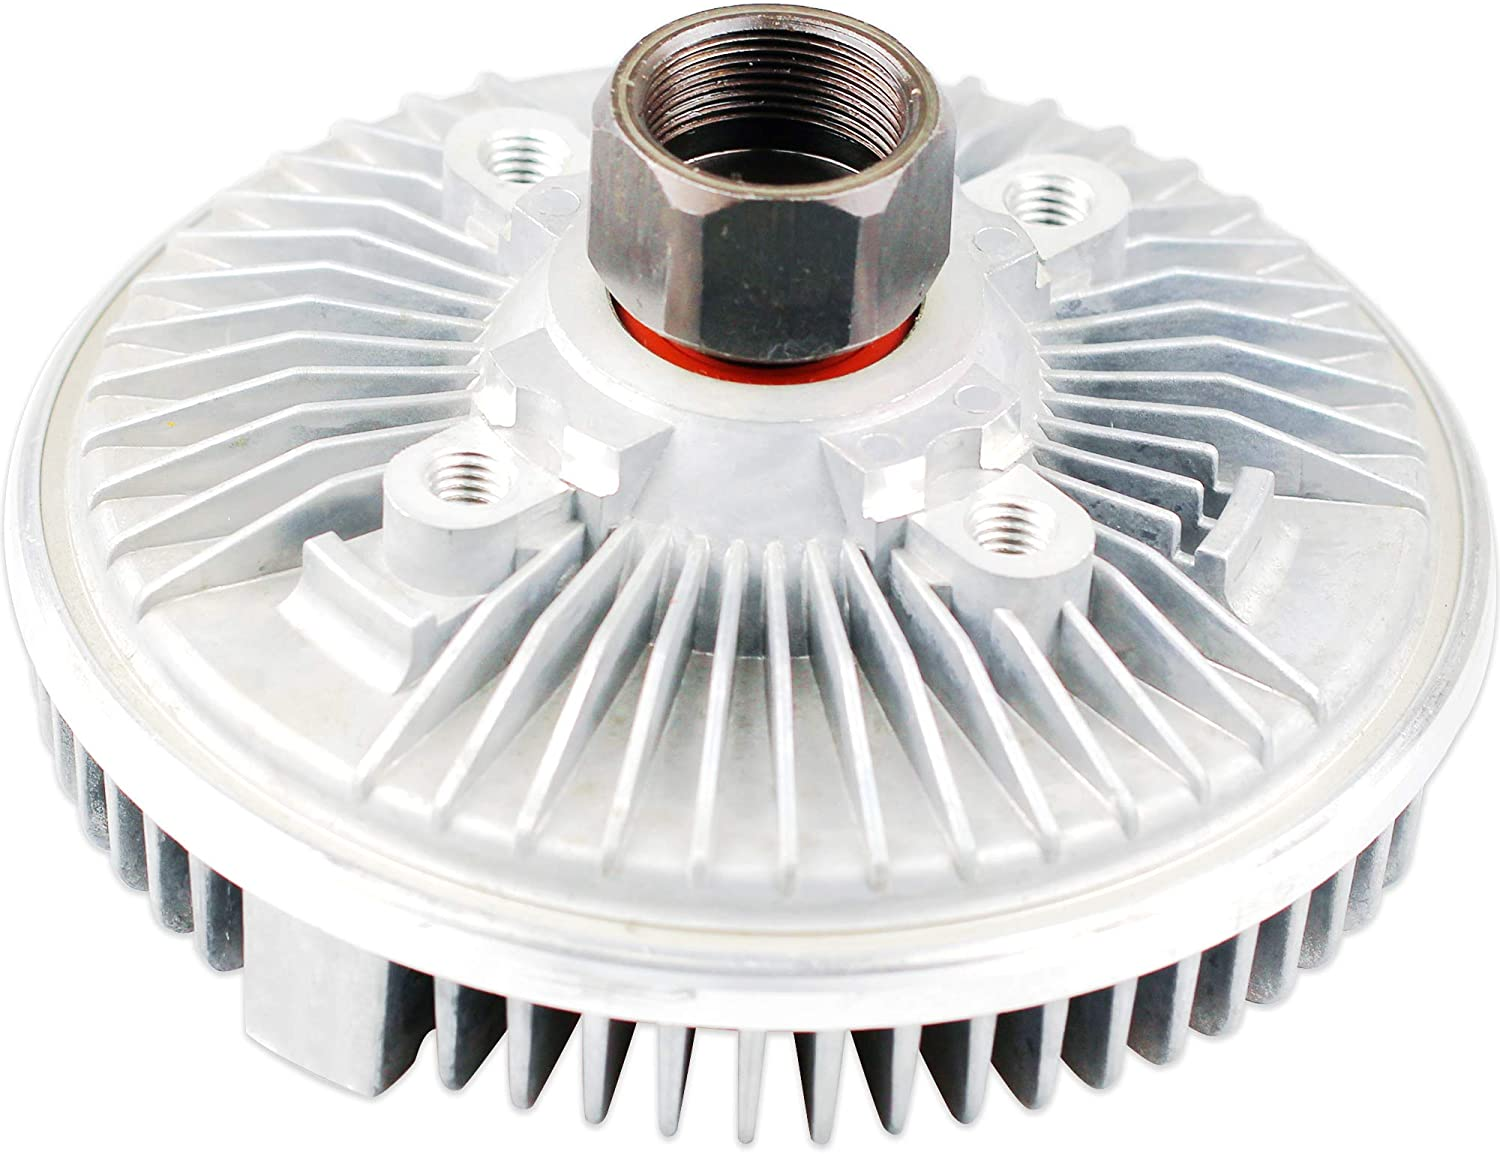 BOXI Engine Cooling Fan Clutch for Chevrolet Colorado W3500 W4500 Tiltmaster GMC Canyon P3500 Hummer H3 Isuzu NPR I-350 I-370 15106619 2787